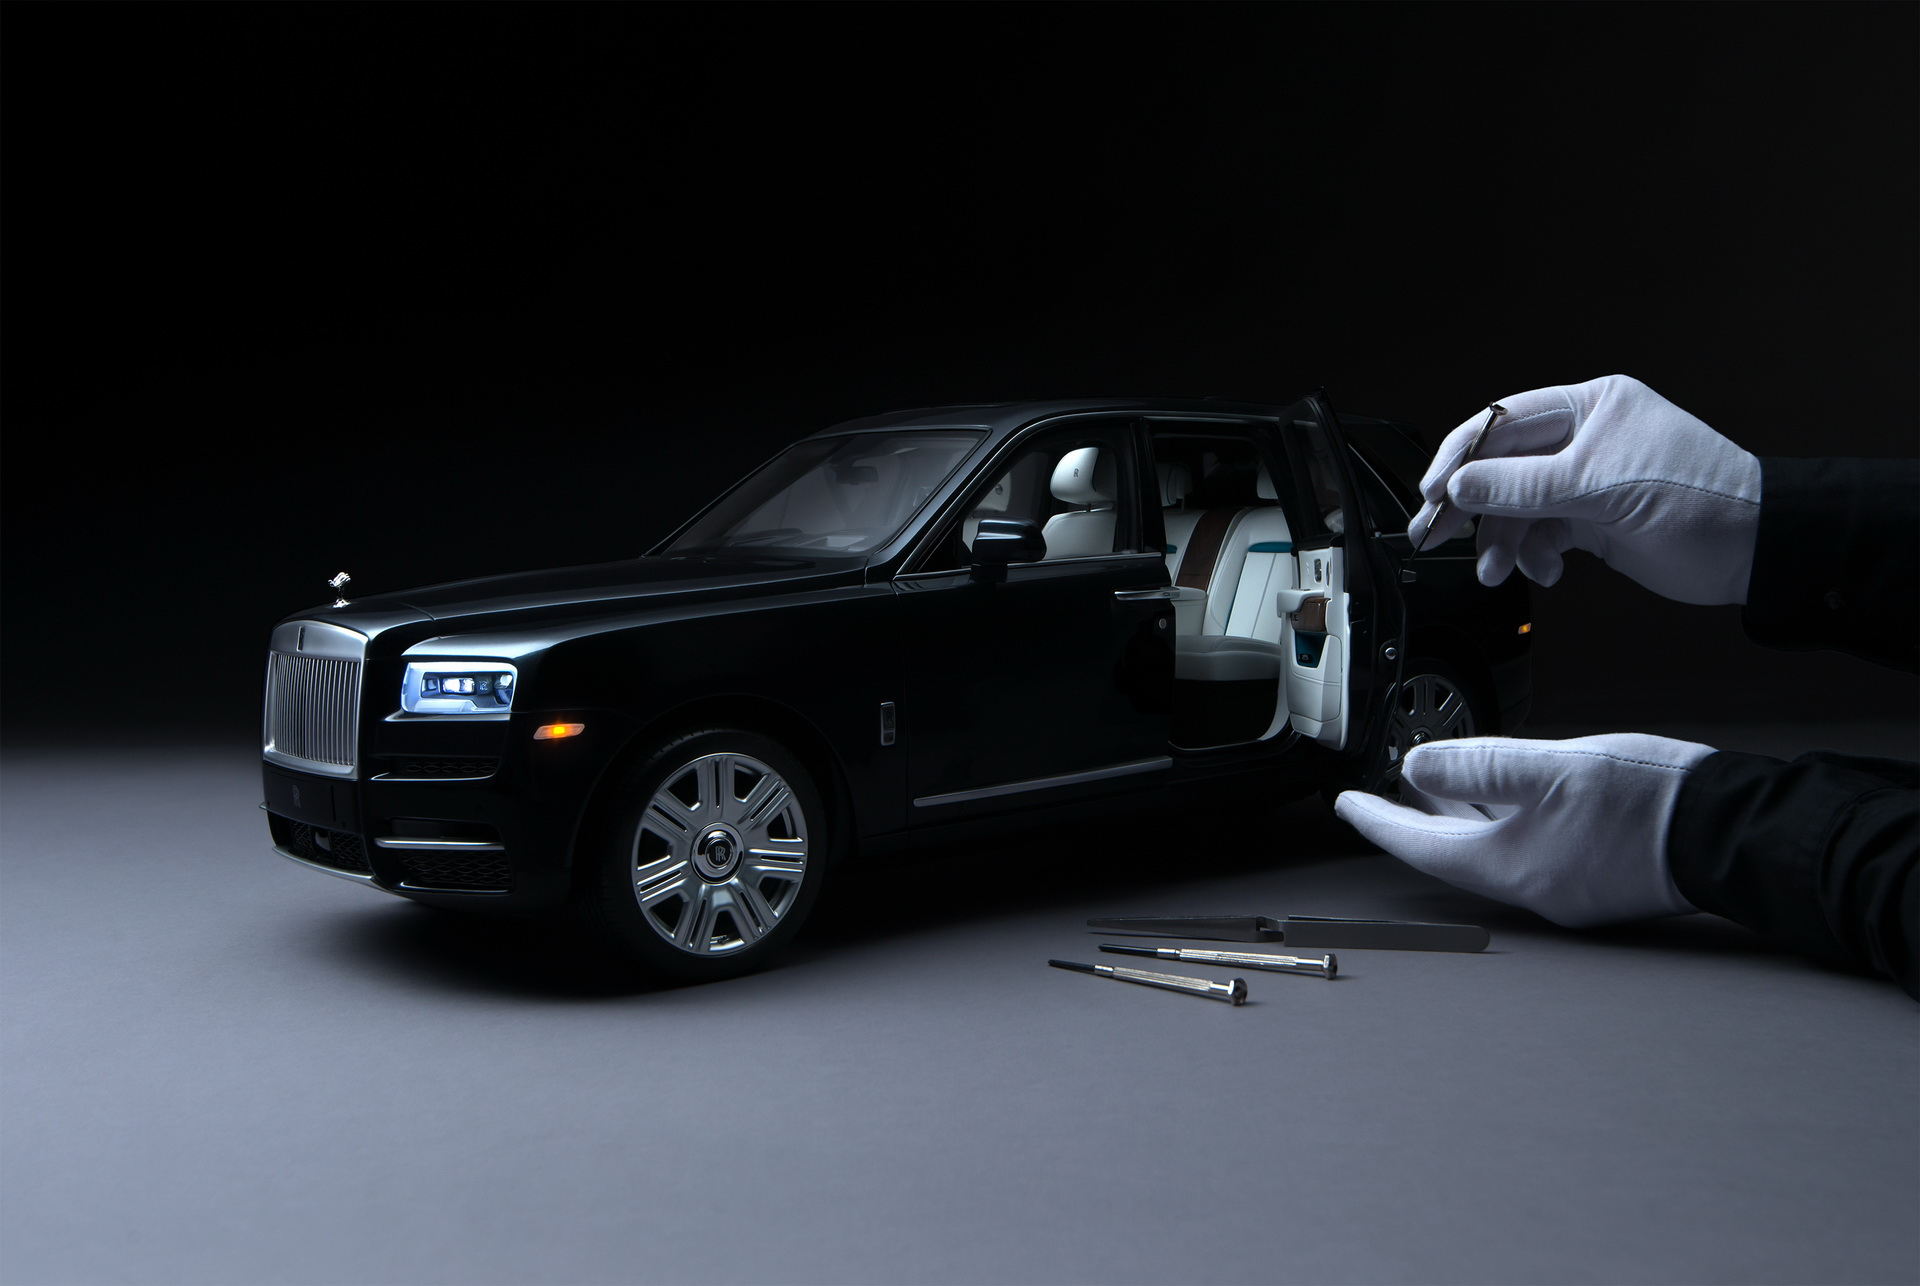 rolls-royce-cullinan-scale-model-1